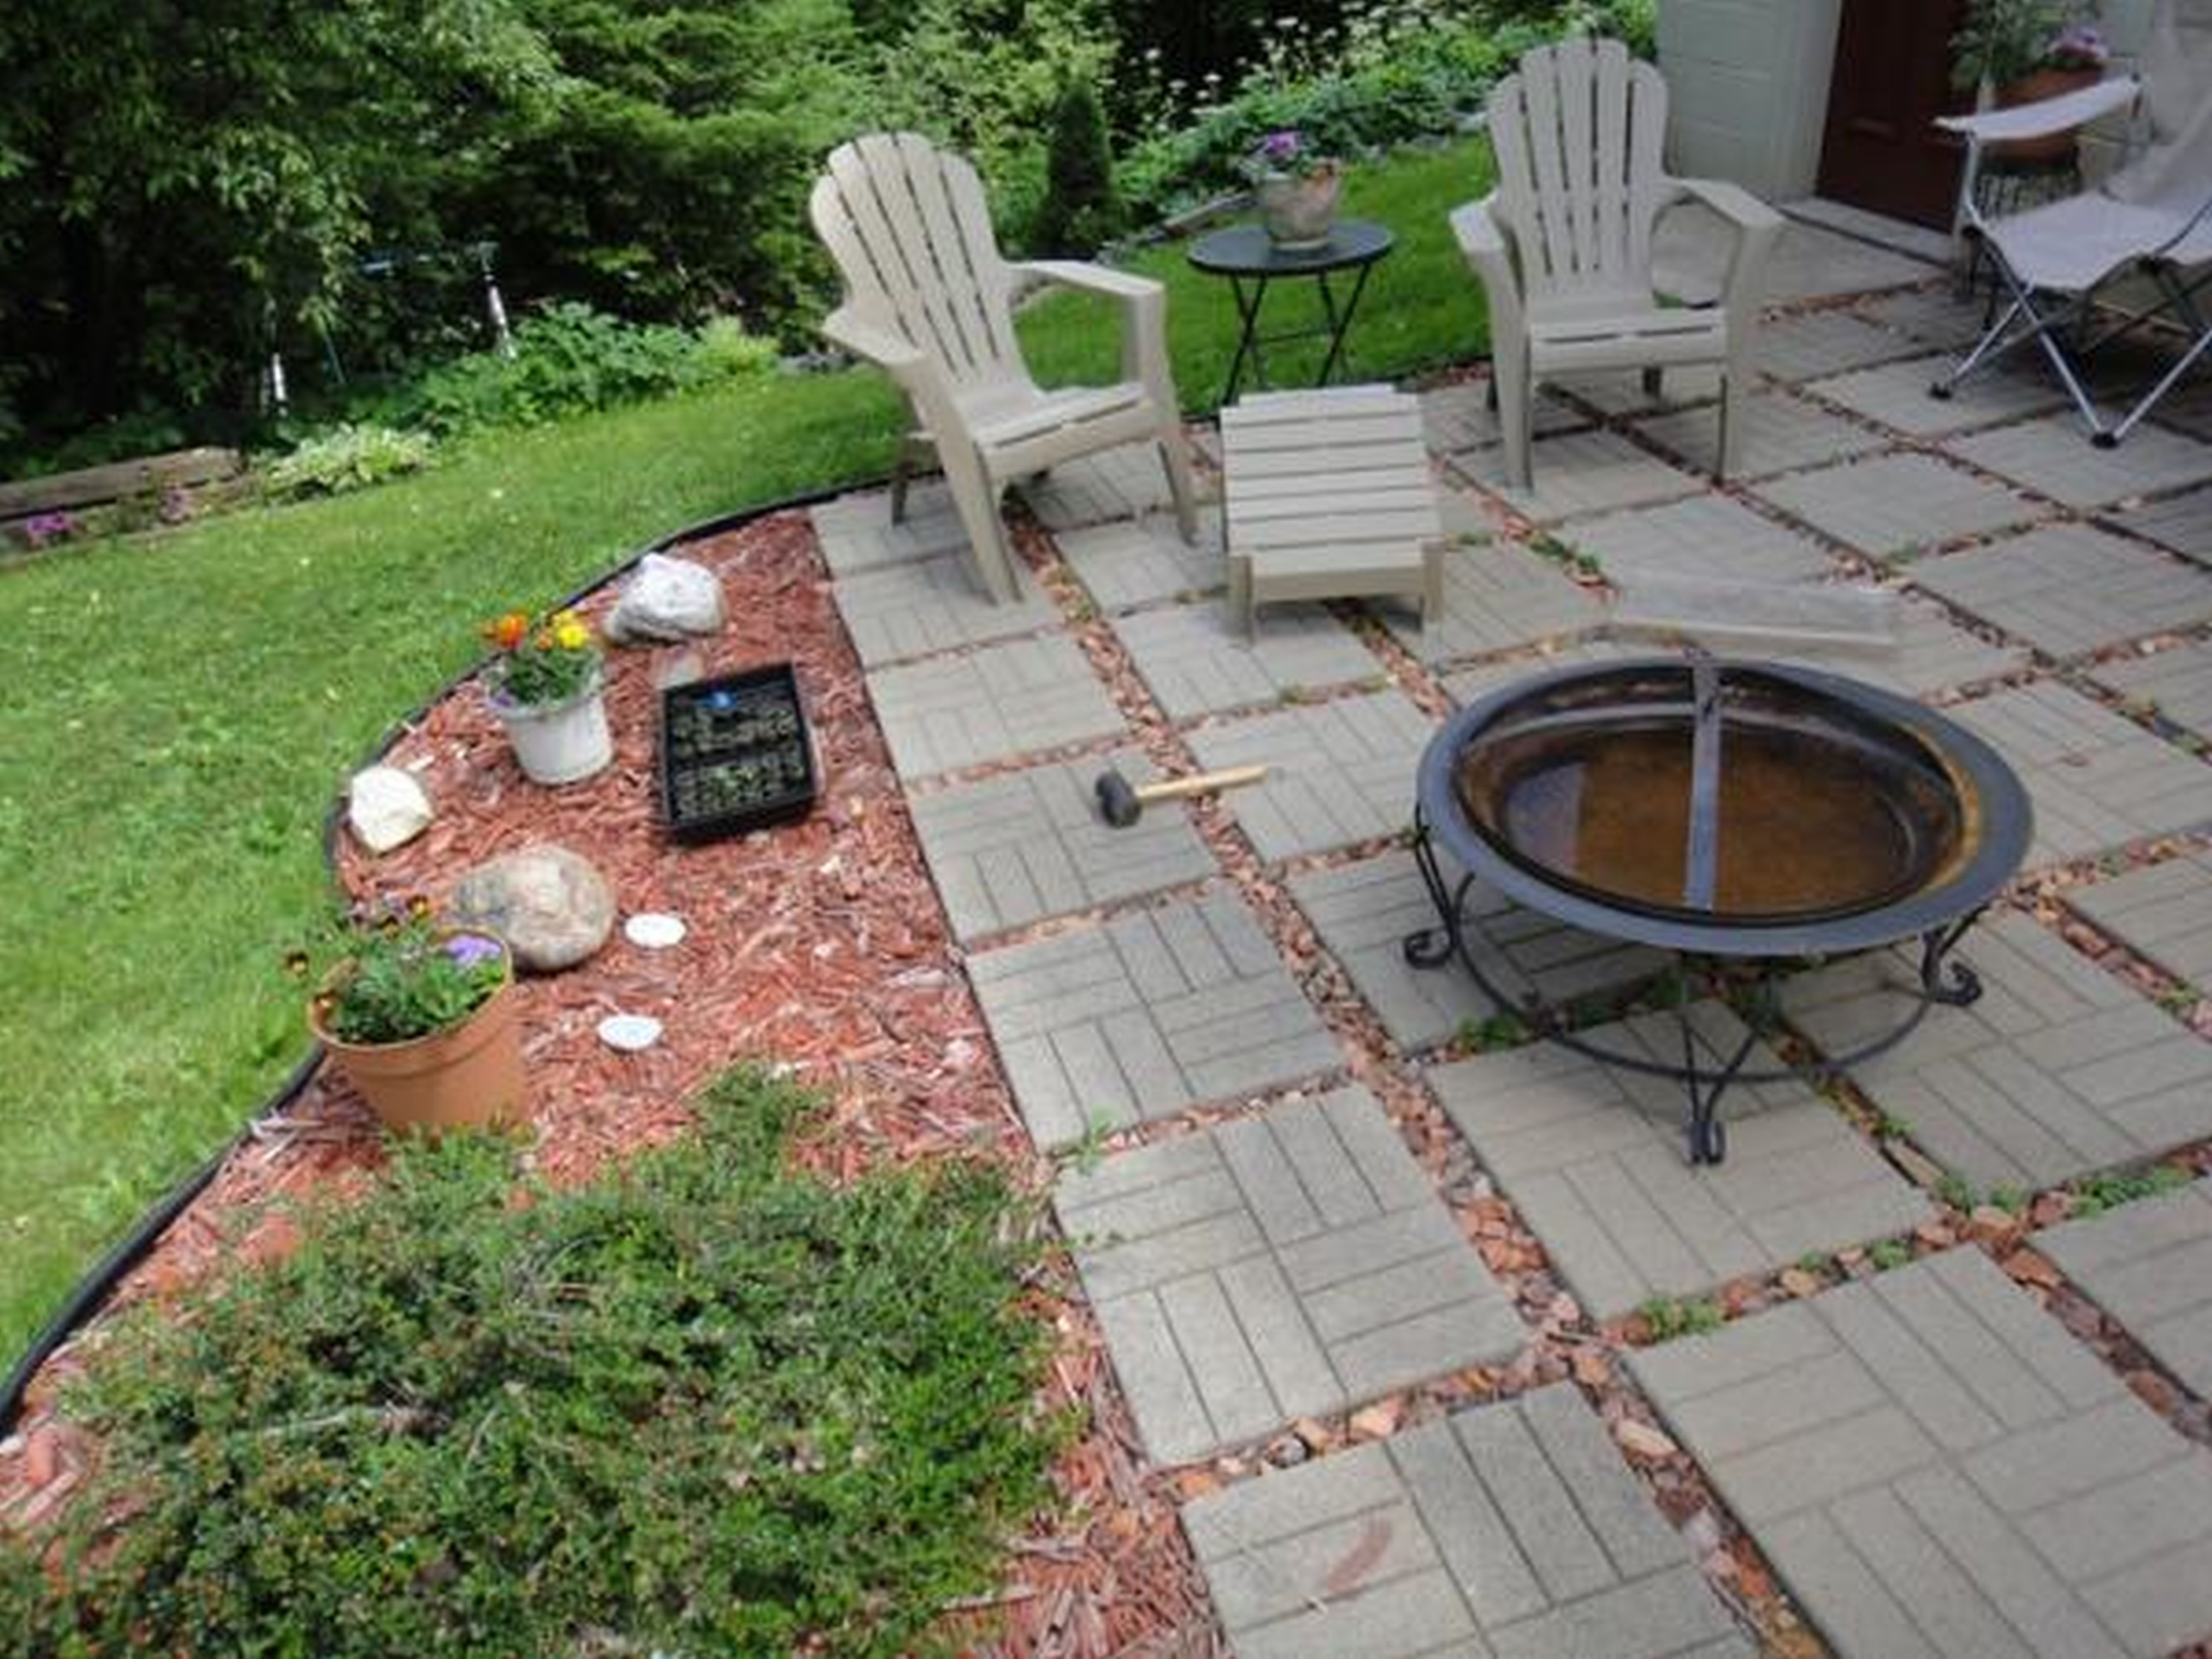 Cheap Patio Ideas Diy Cheap Easy Diy Patio Ideas intended for 14 Clever Concepts of How to Build DIY Backyard Landscape Design